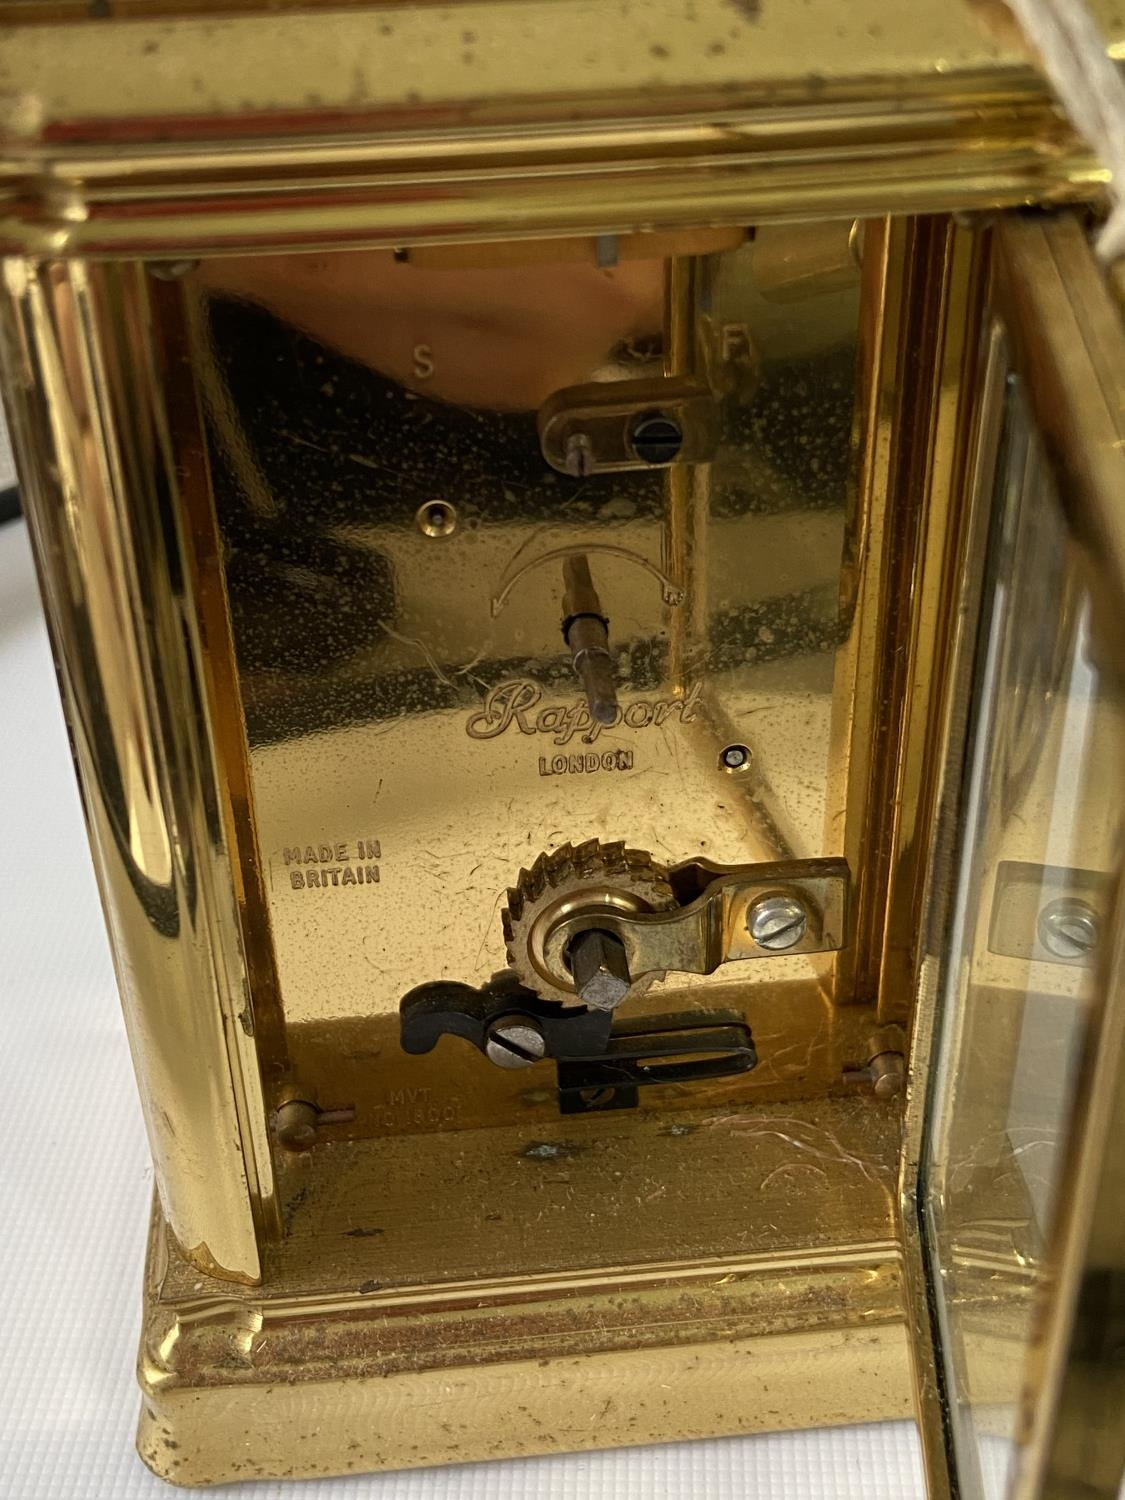 Antique heavy brass carriage clock [Rapport London] [MVT No 1800] in a working condition and with - Image 8 of 12